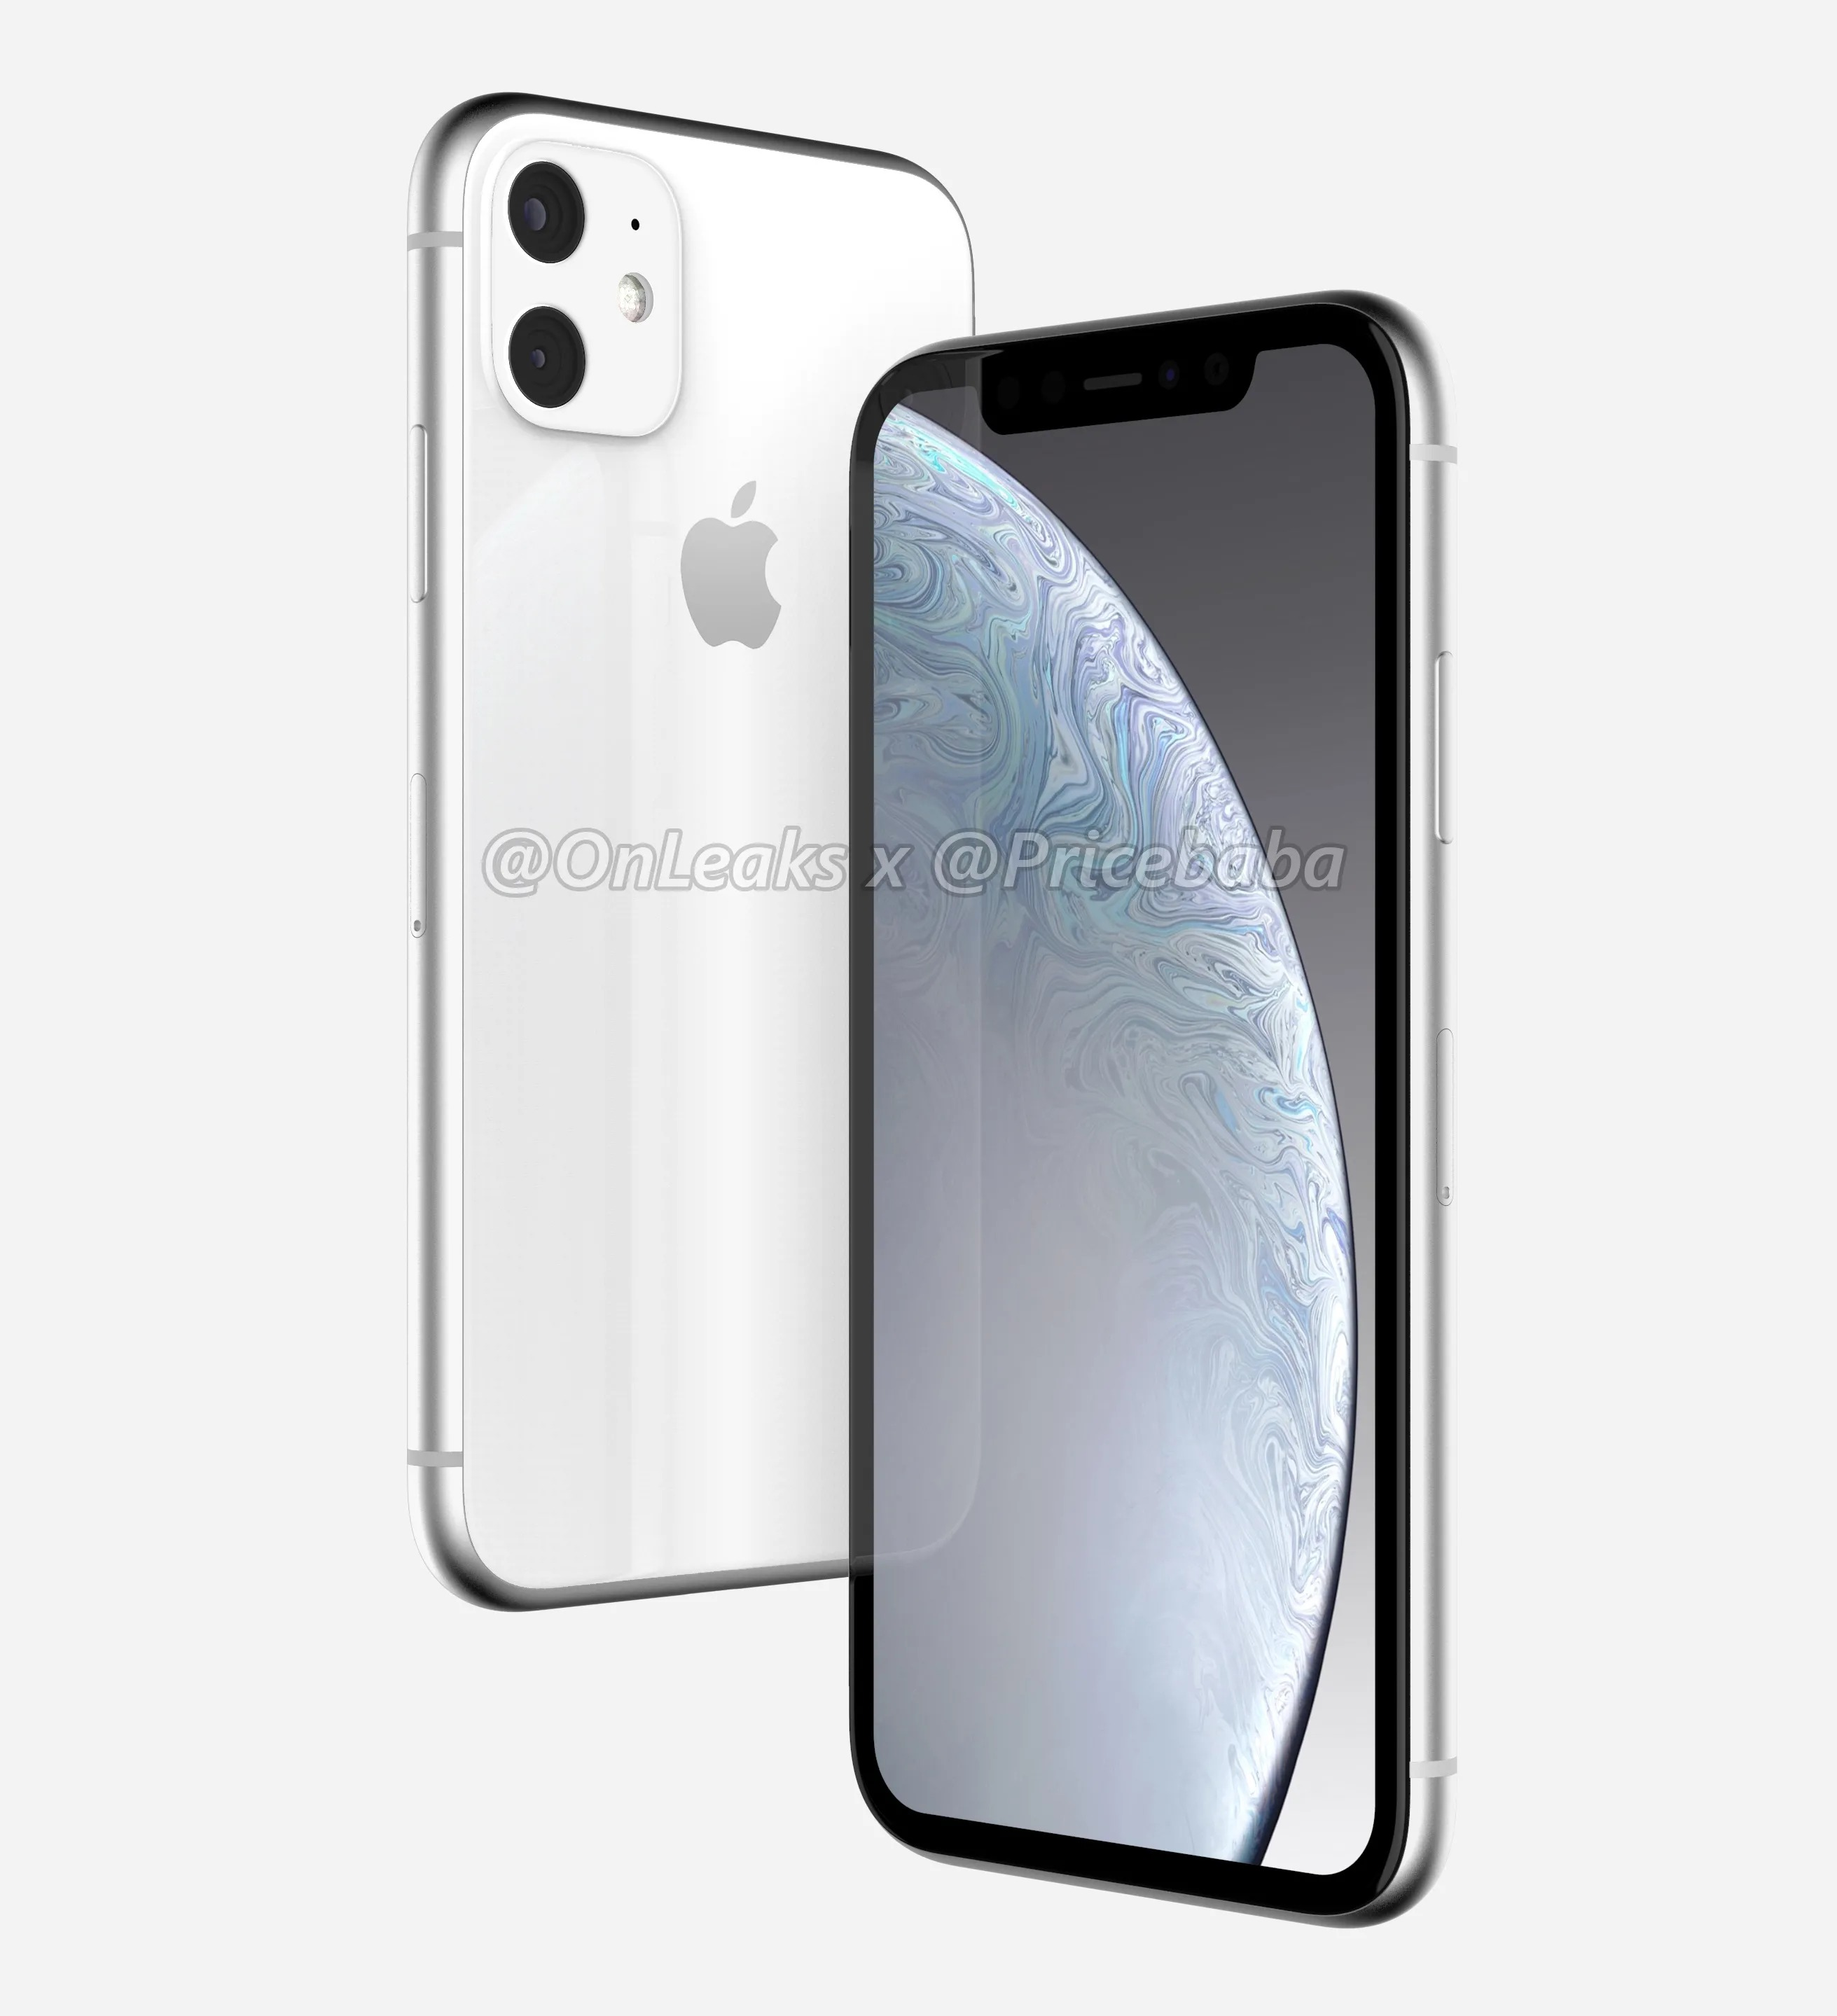 Supuesto iPhone XR de segunda generación, o iPhone XE